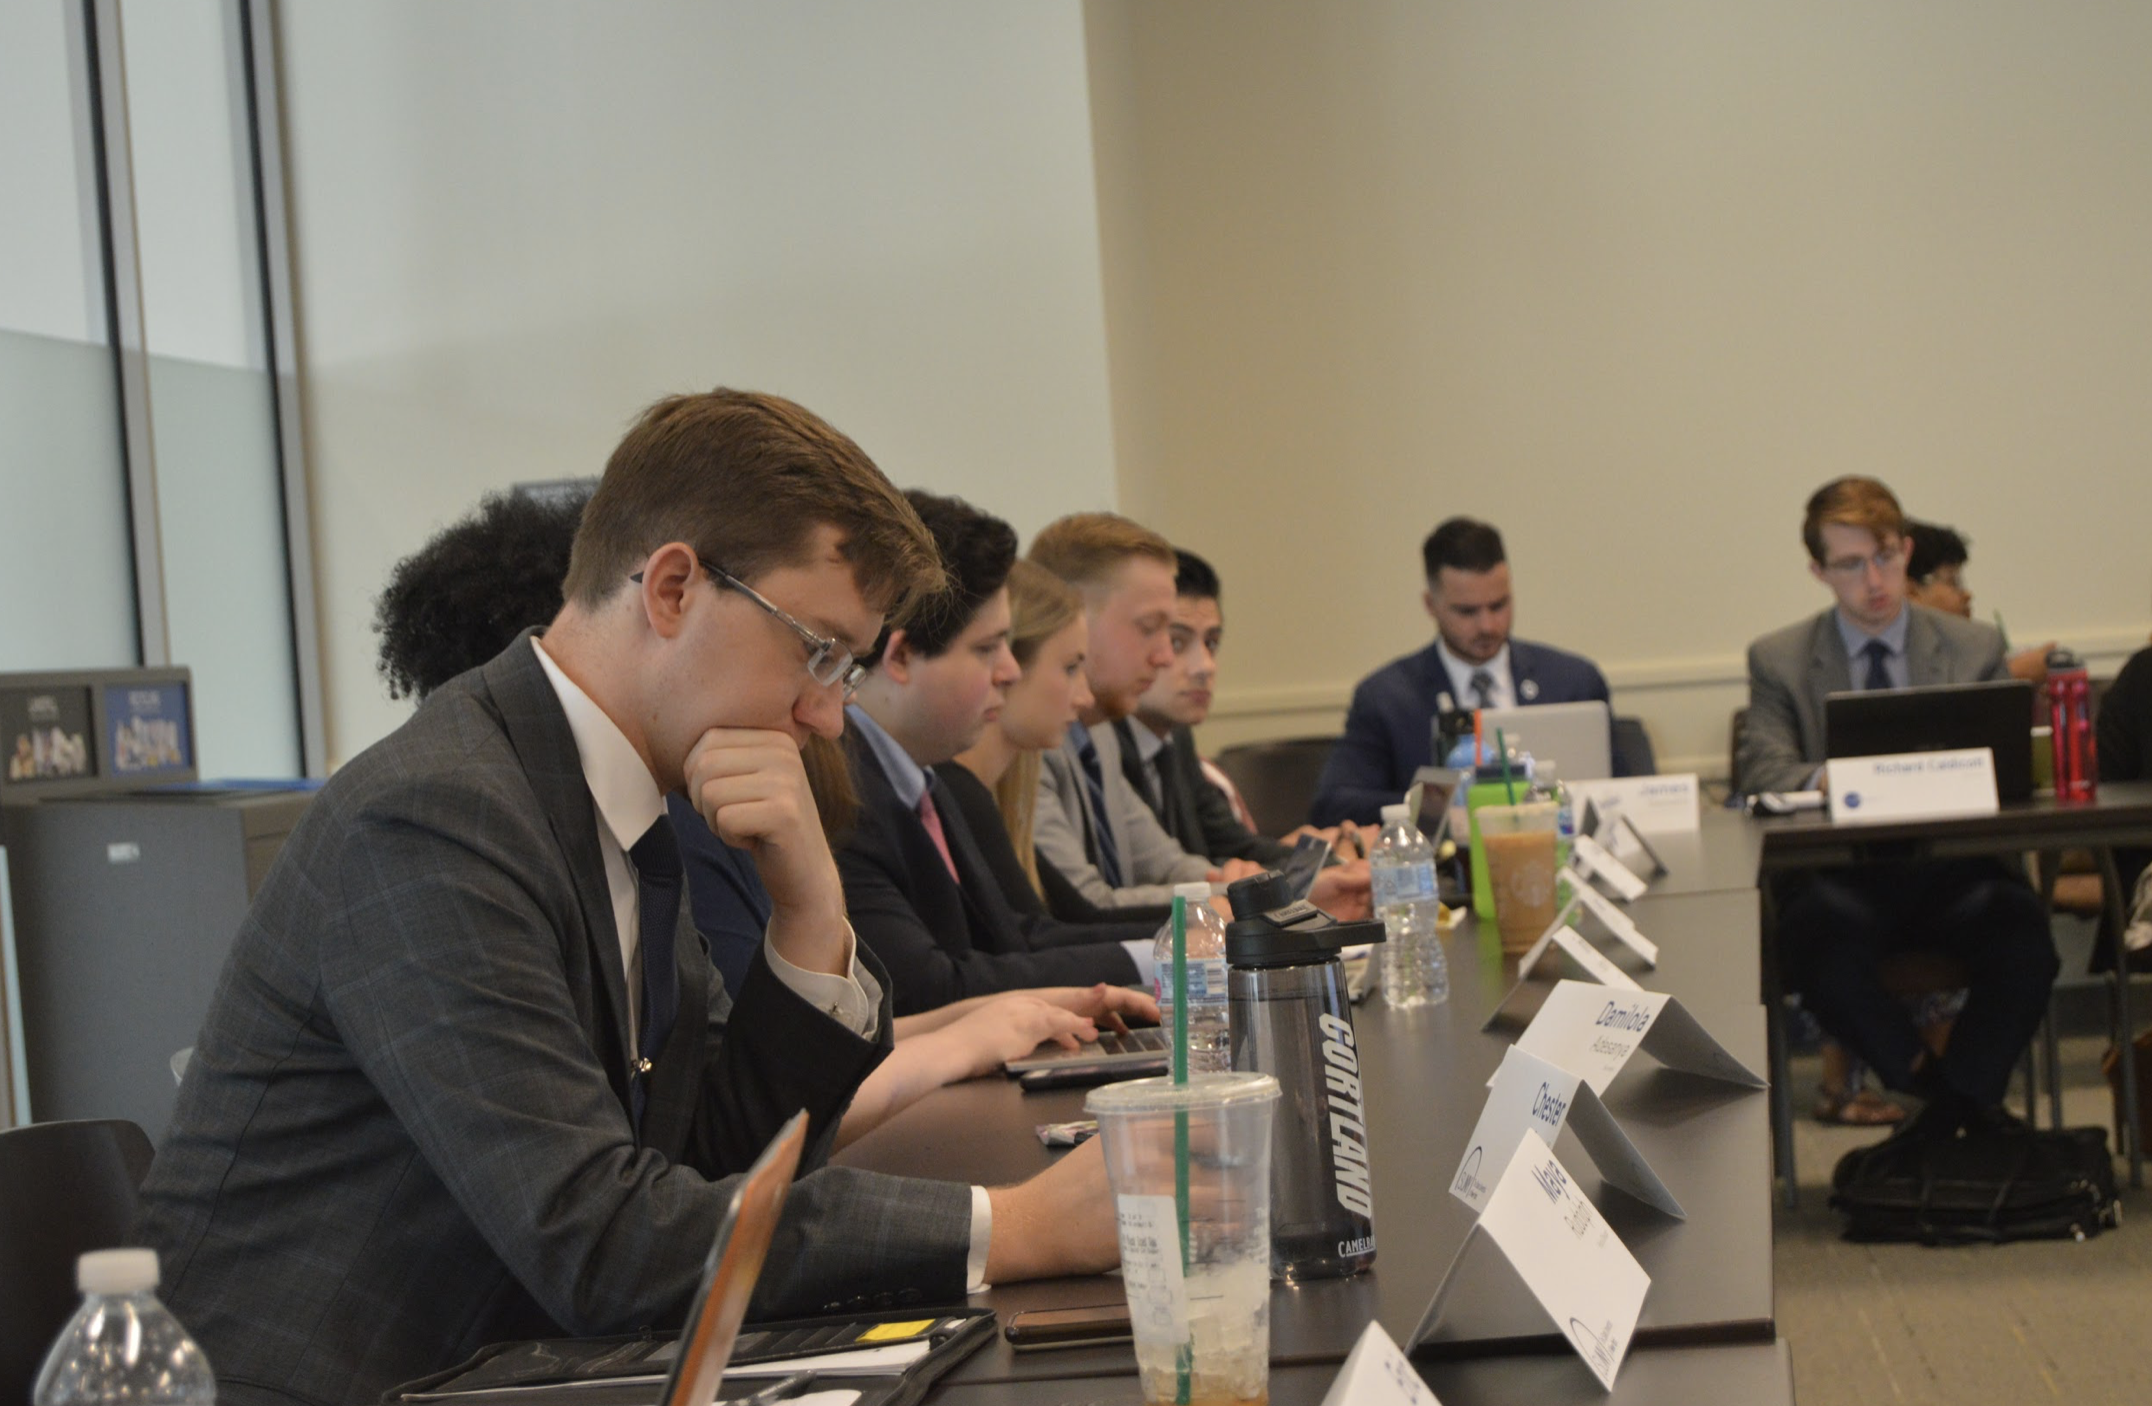 Members of the Executive Committee working on laptops in a board room at the University at Albany